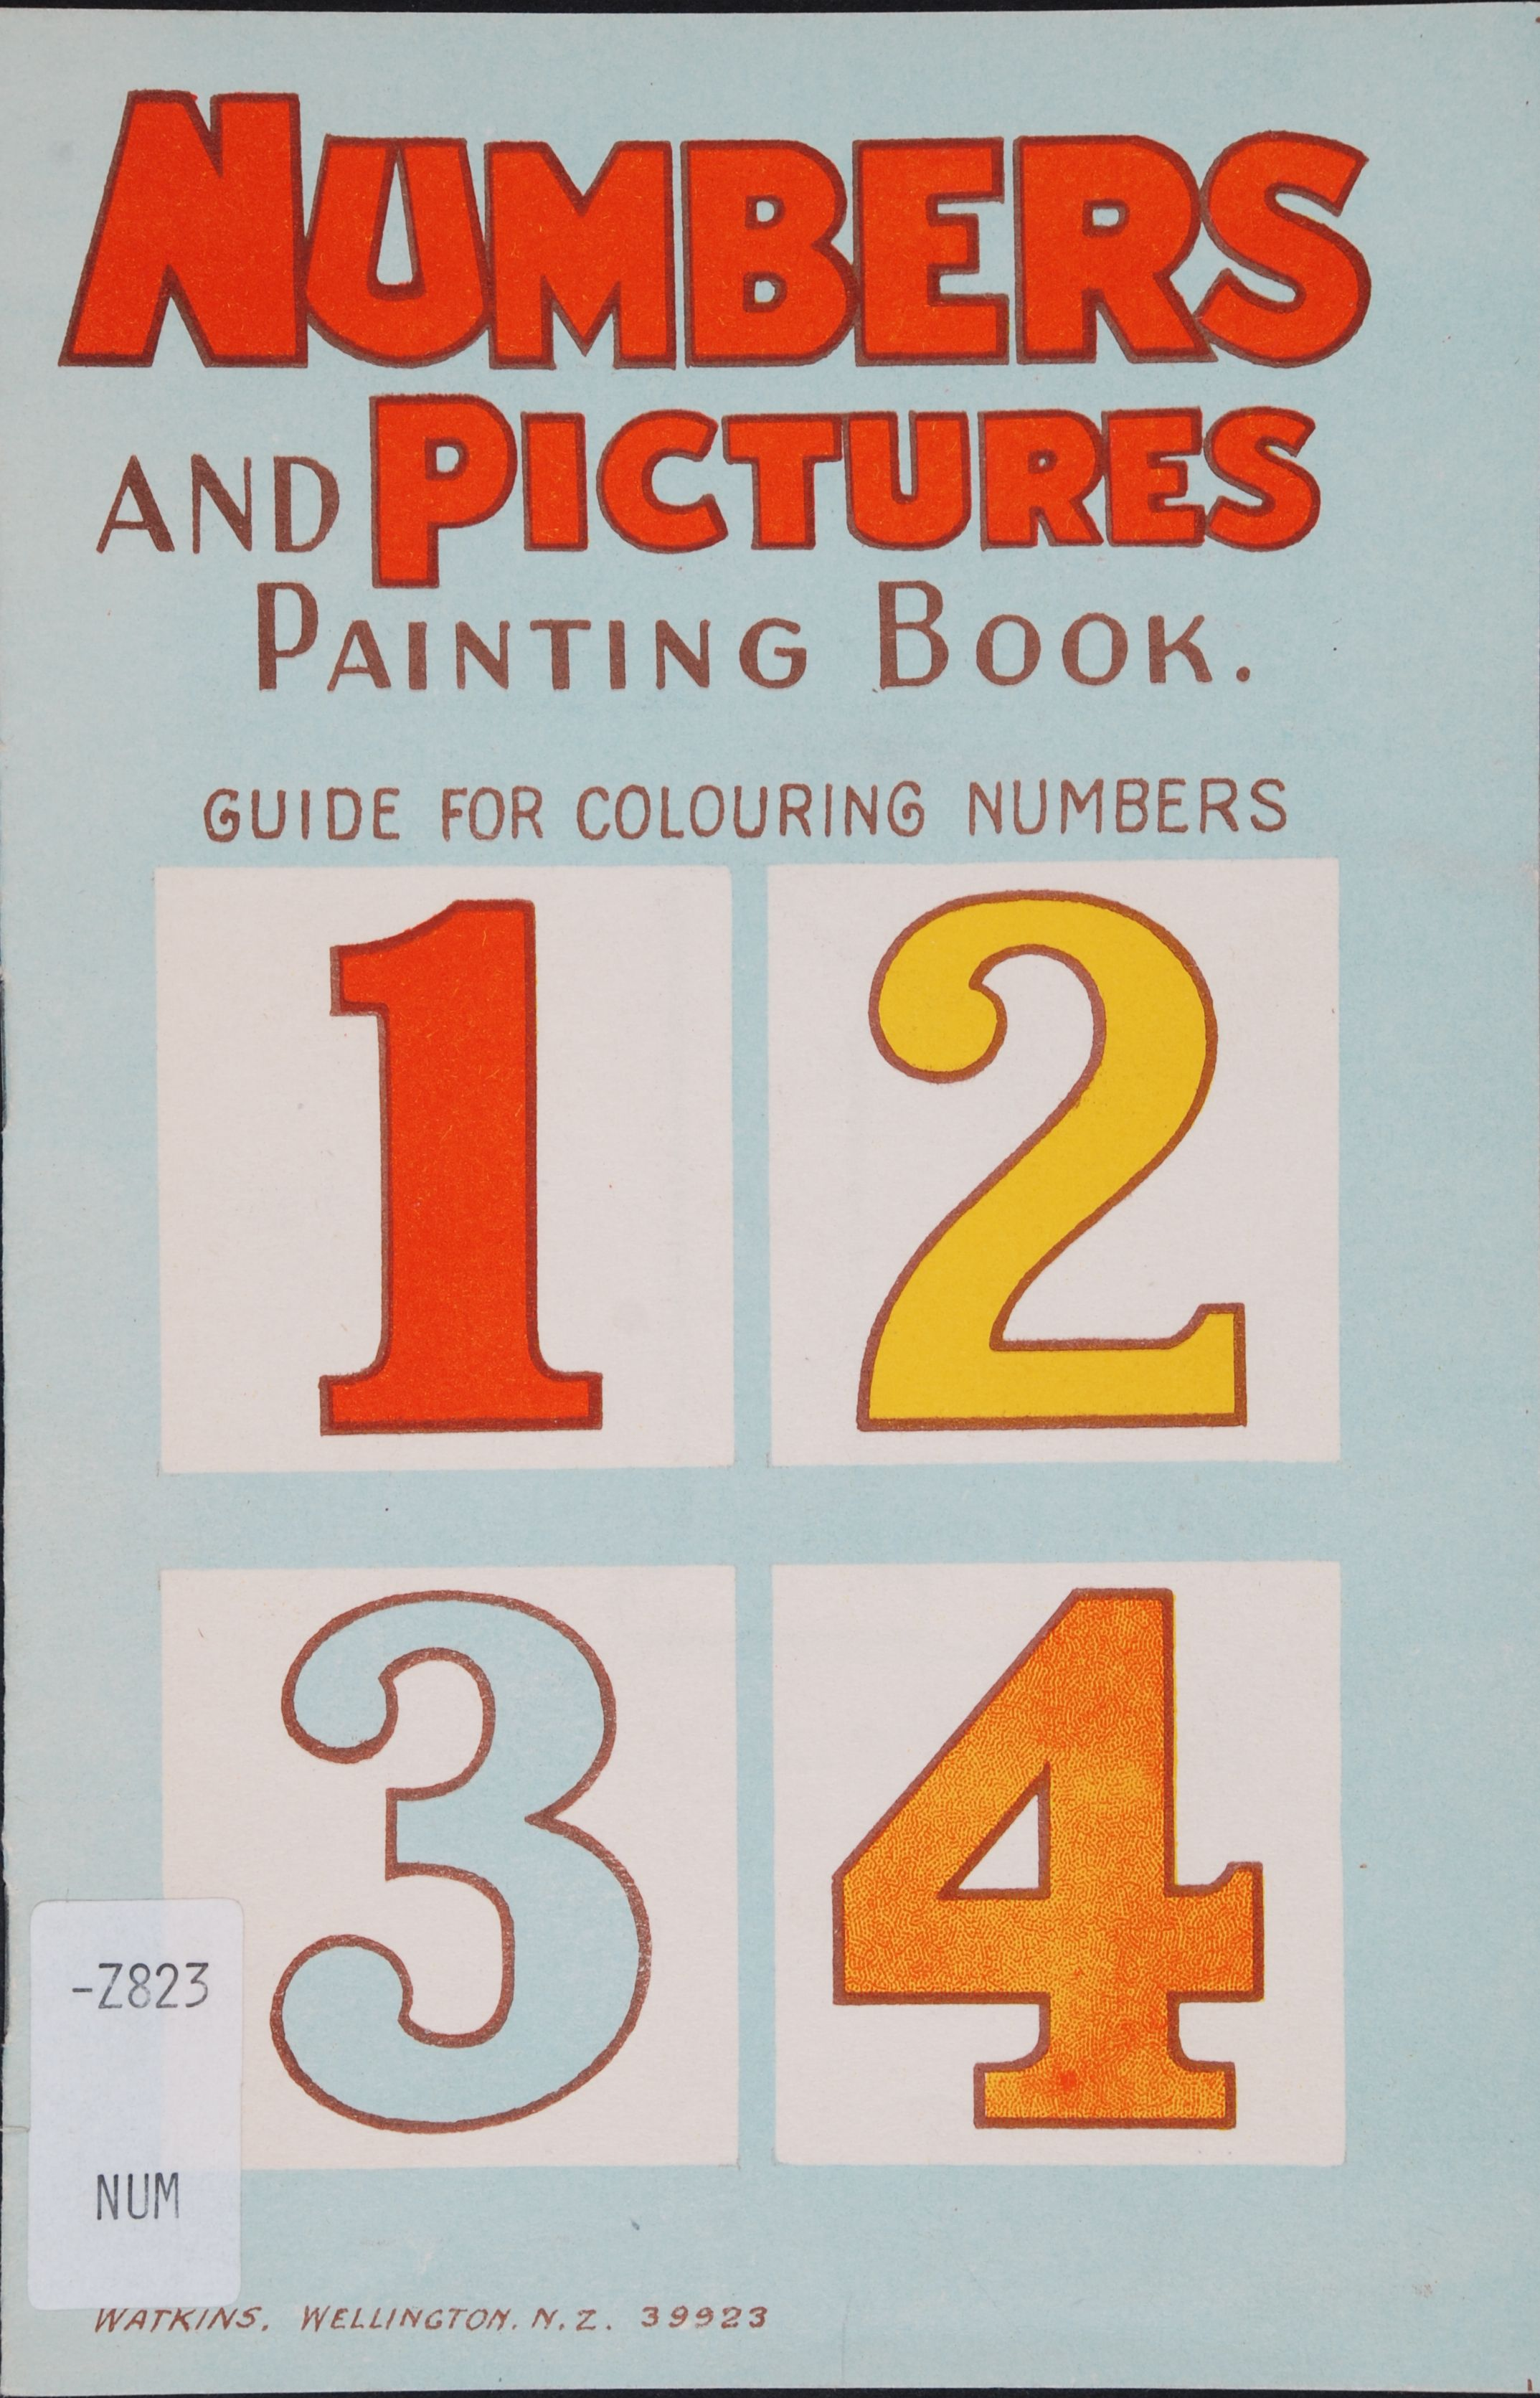 Numbers and pictures painting book. Wellington, N.Z.: Watkins, [1942].